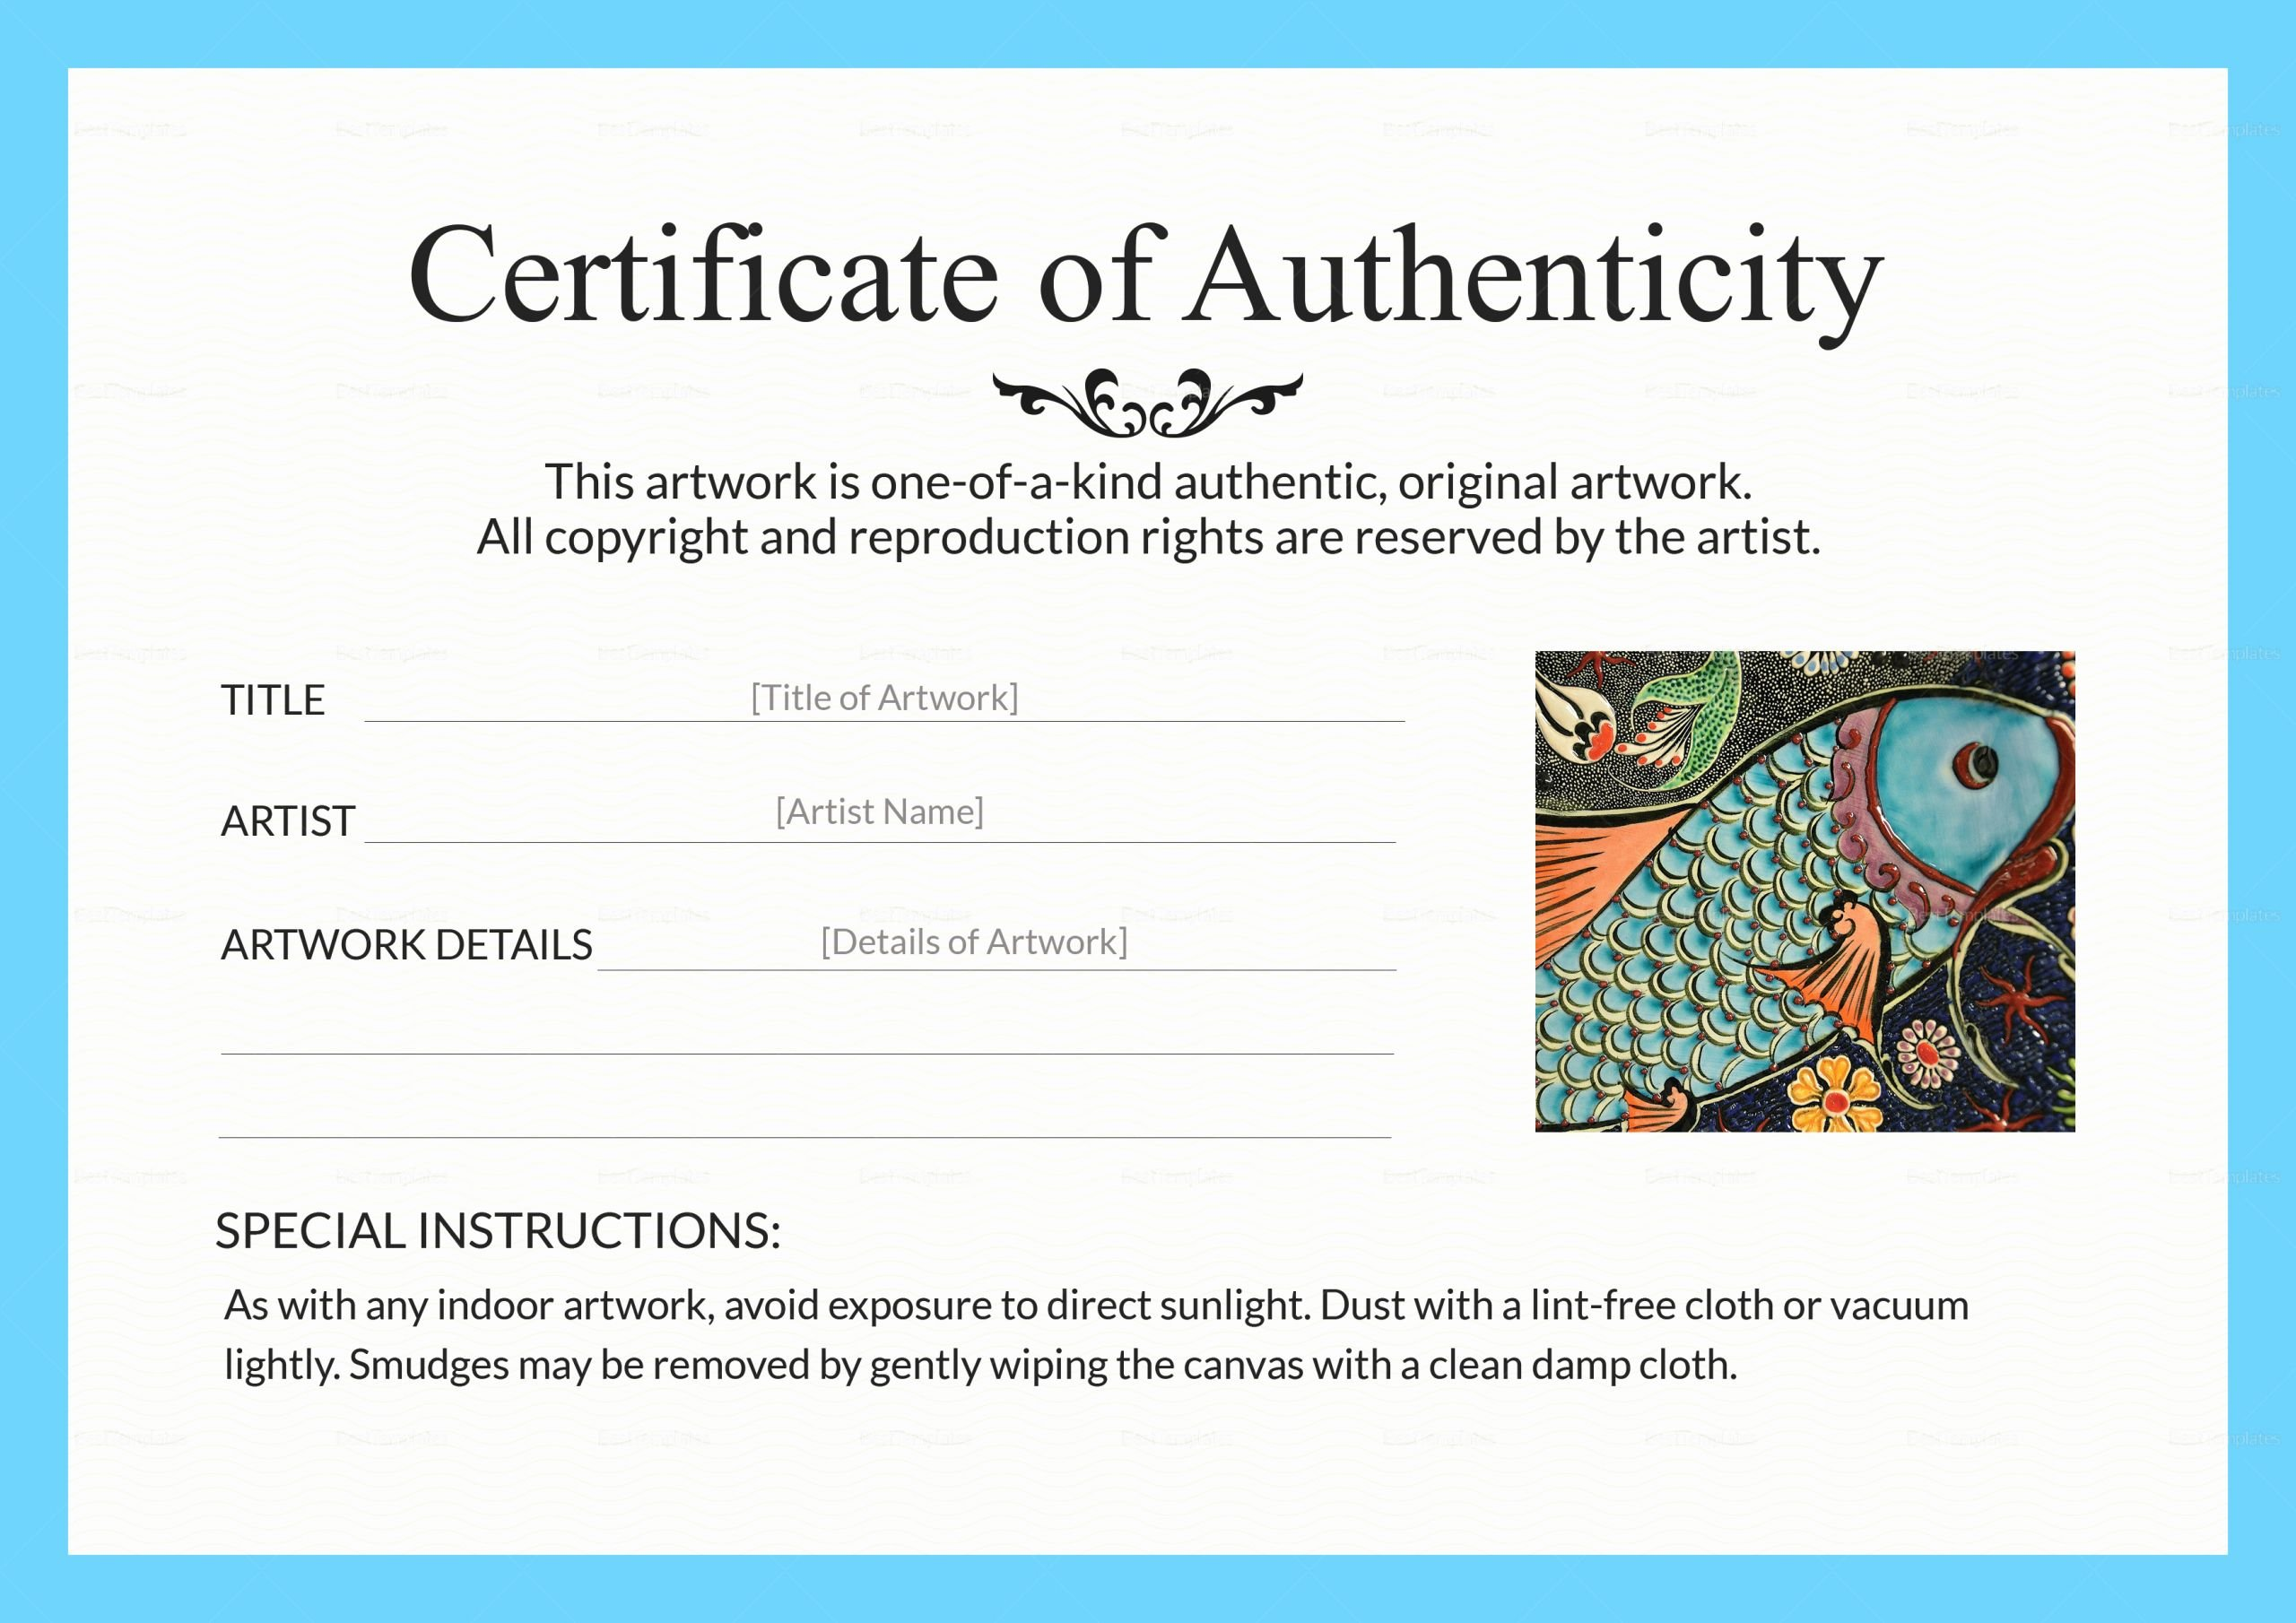 Certificate Of Authenticity Autograph Template New Artwork Authenticity Certificate Design Template In Psd Word